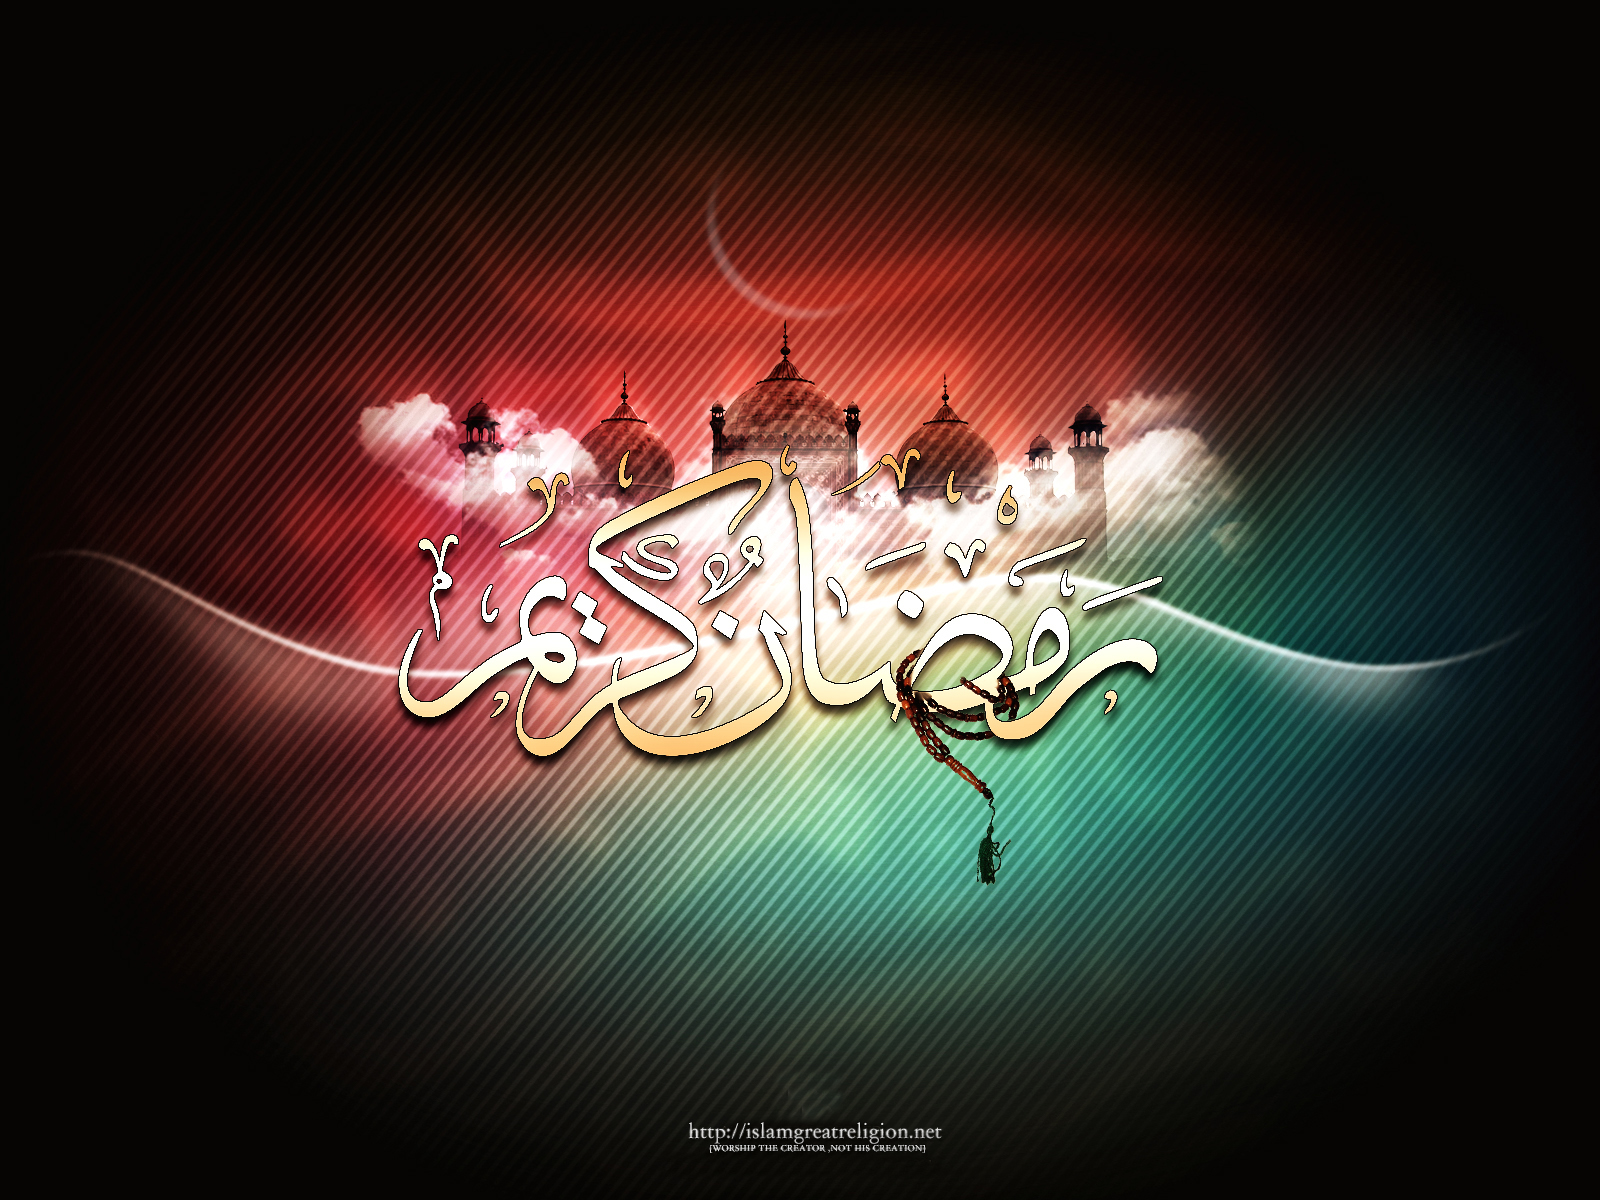 Ramadhan 2011 Wallpapers | Top Beautiful Islamic Wallpapers